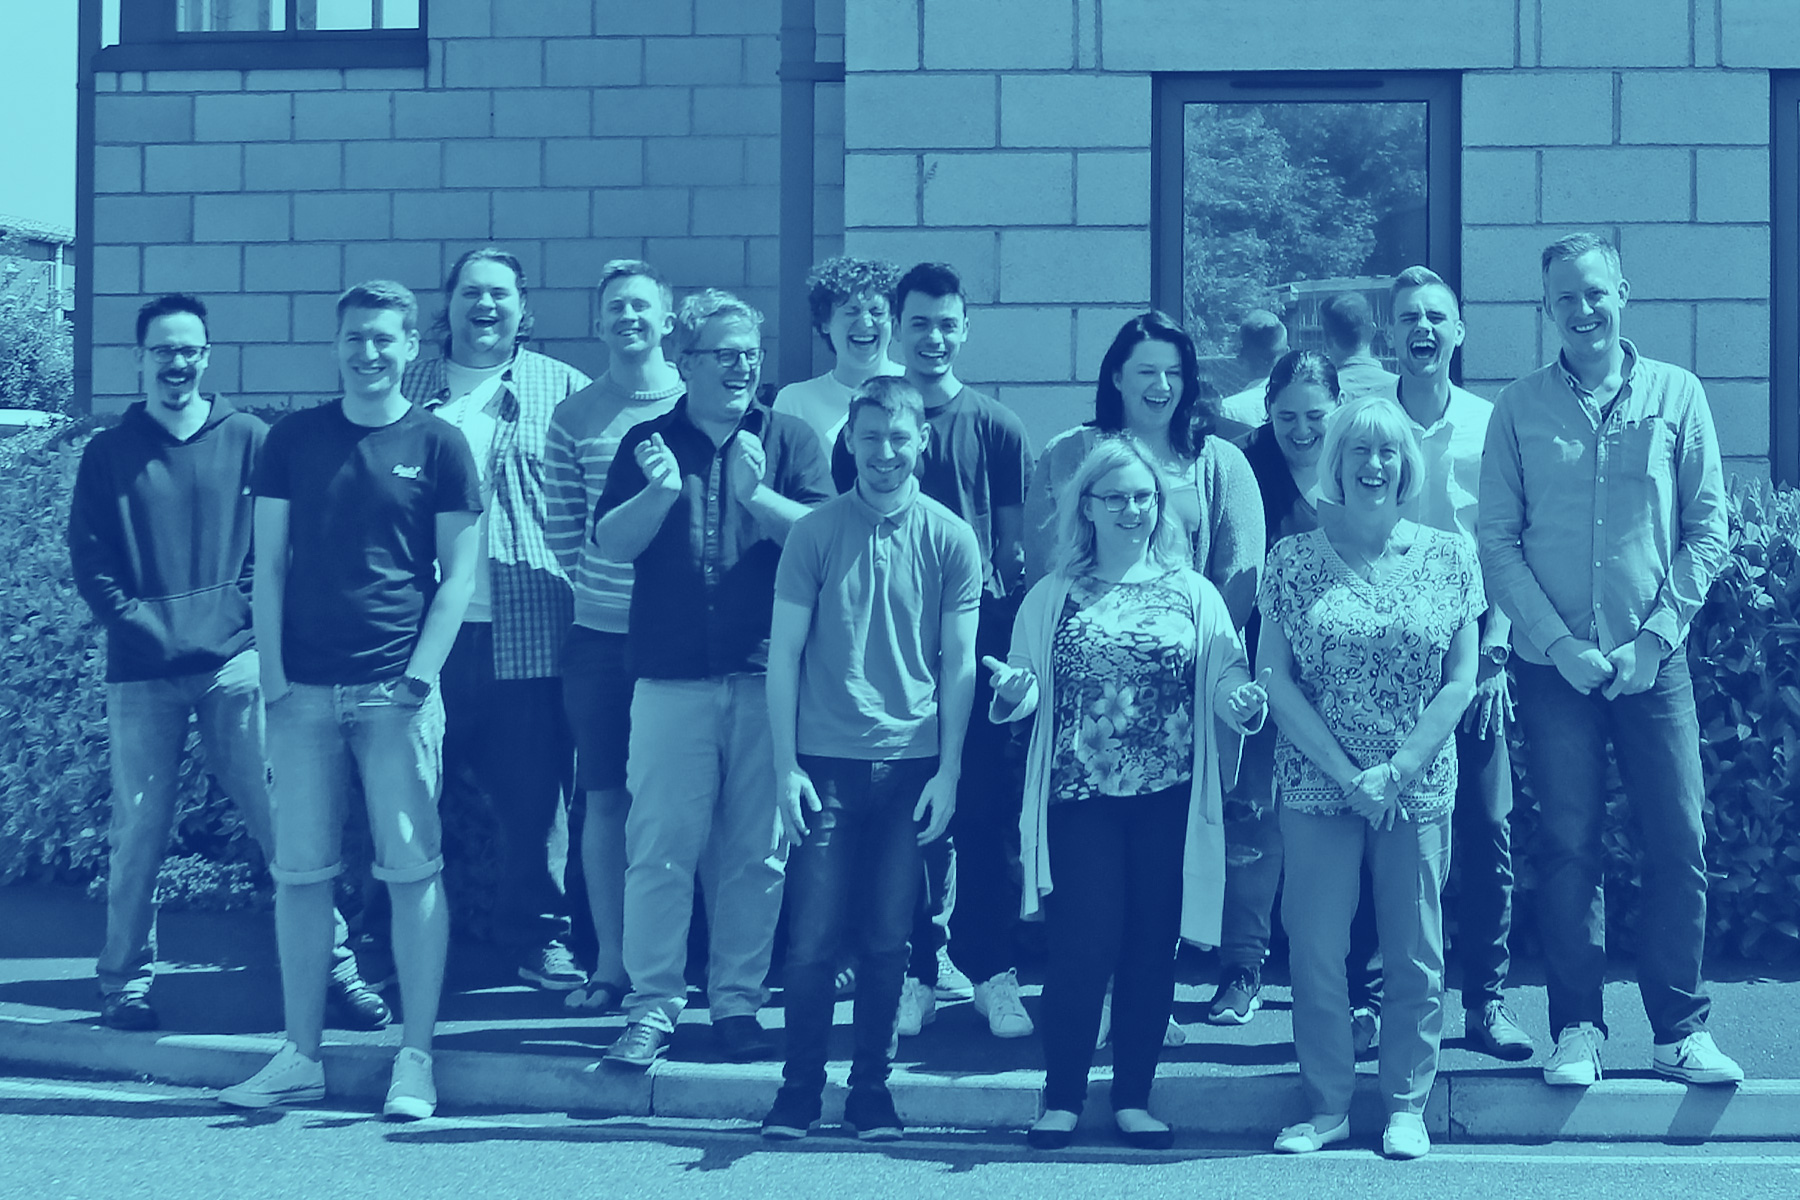 Welcome to the New Look Staff Squared image